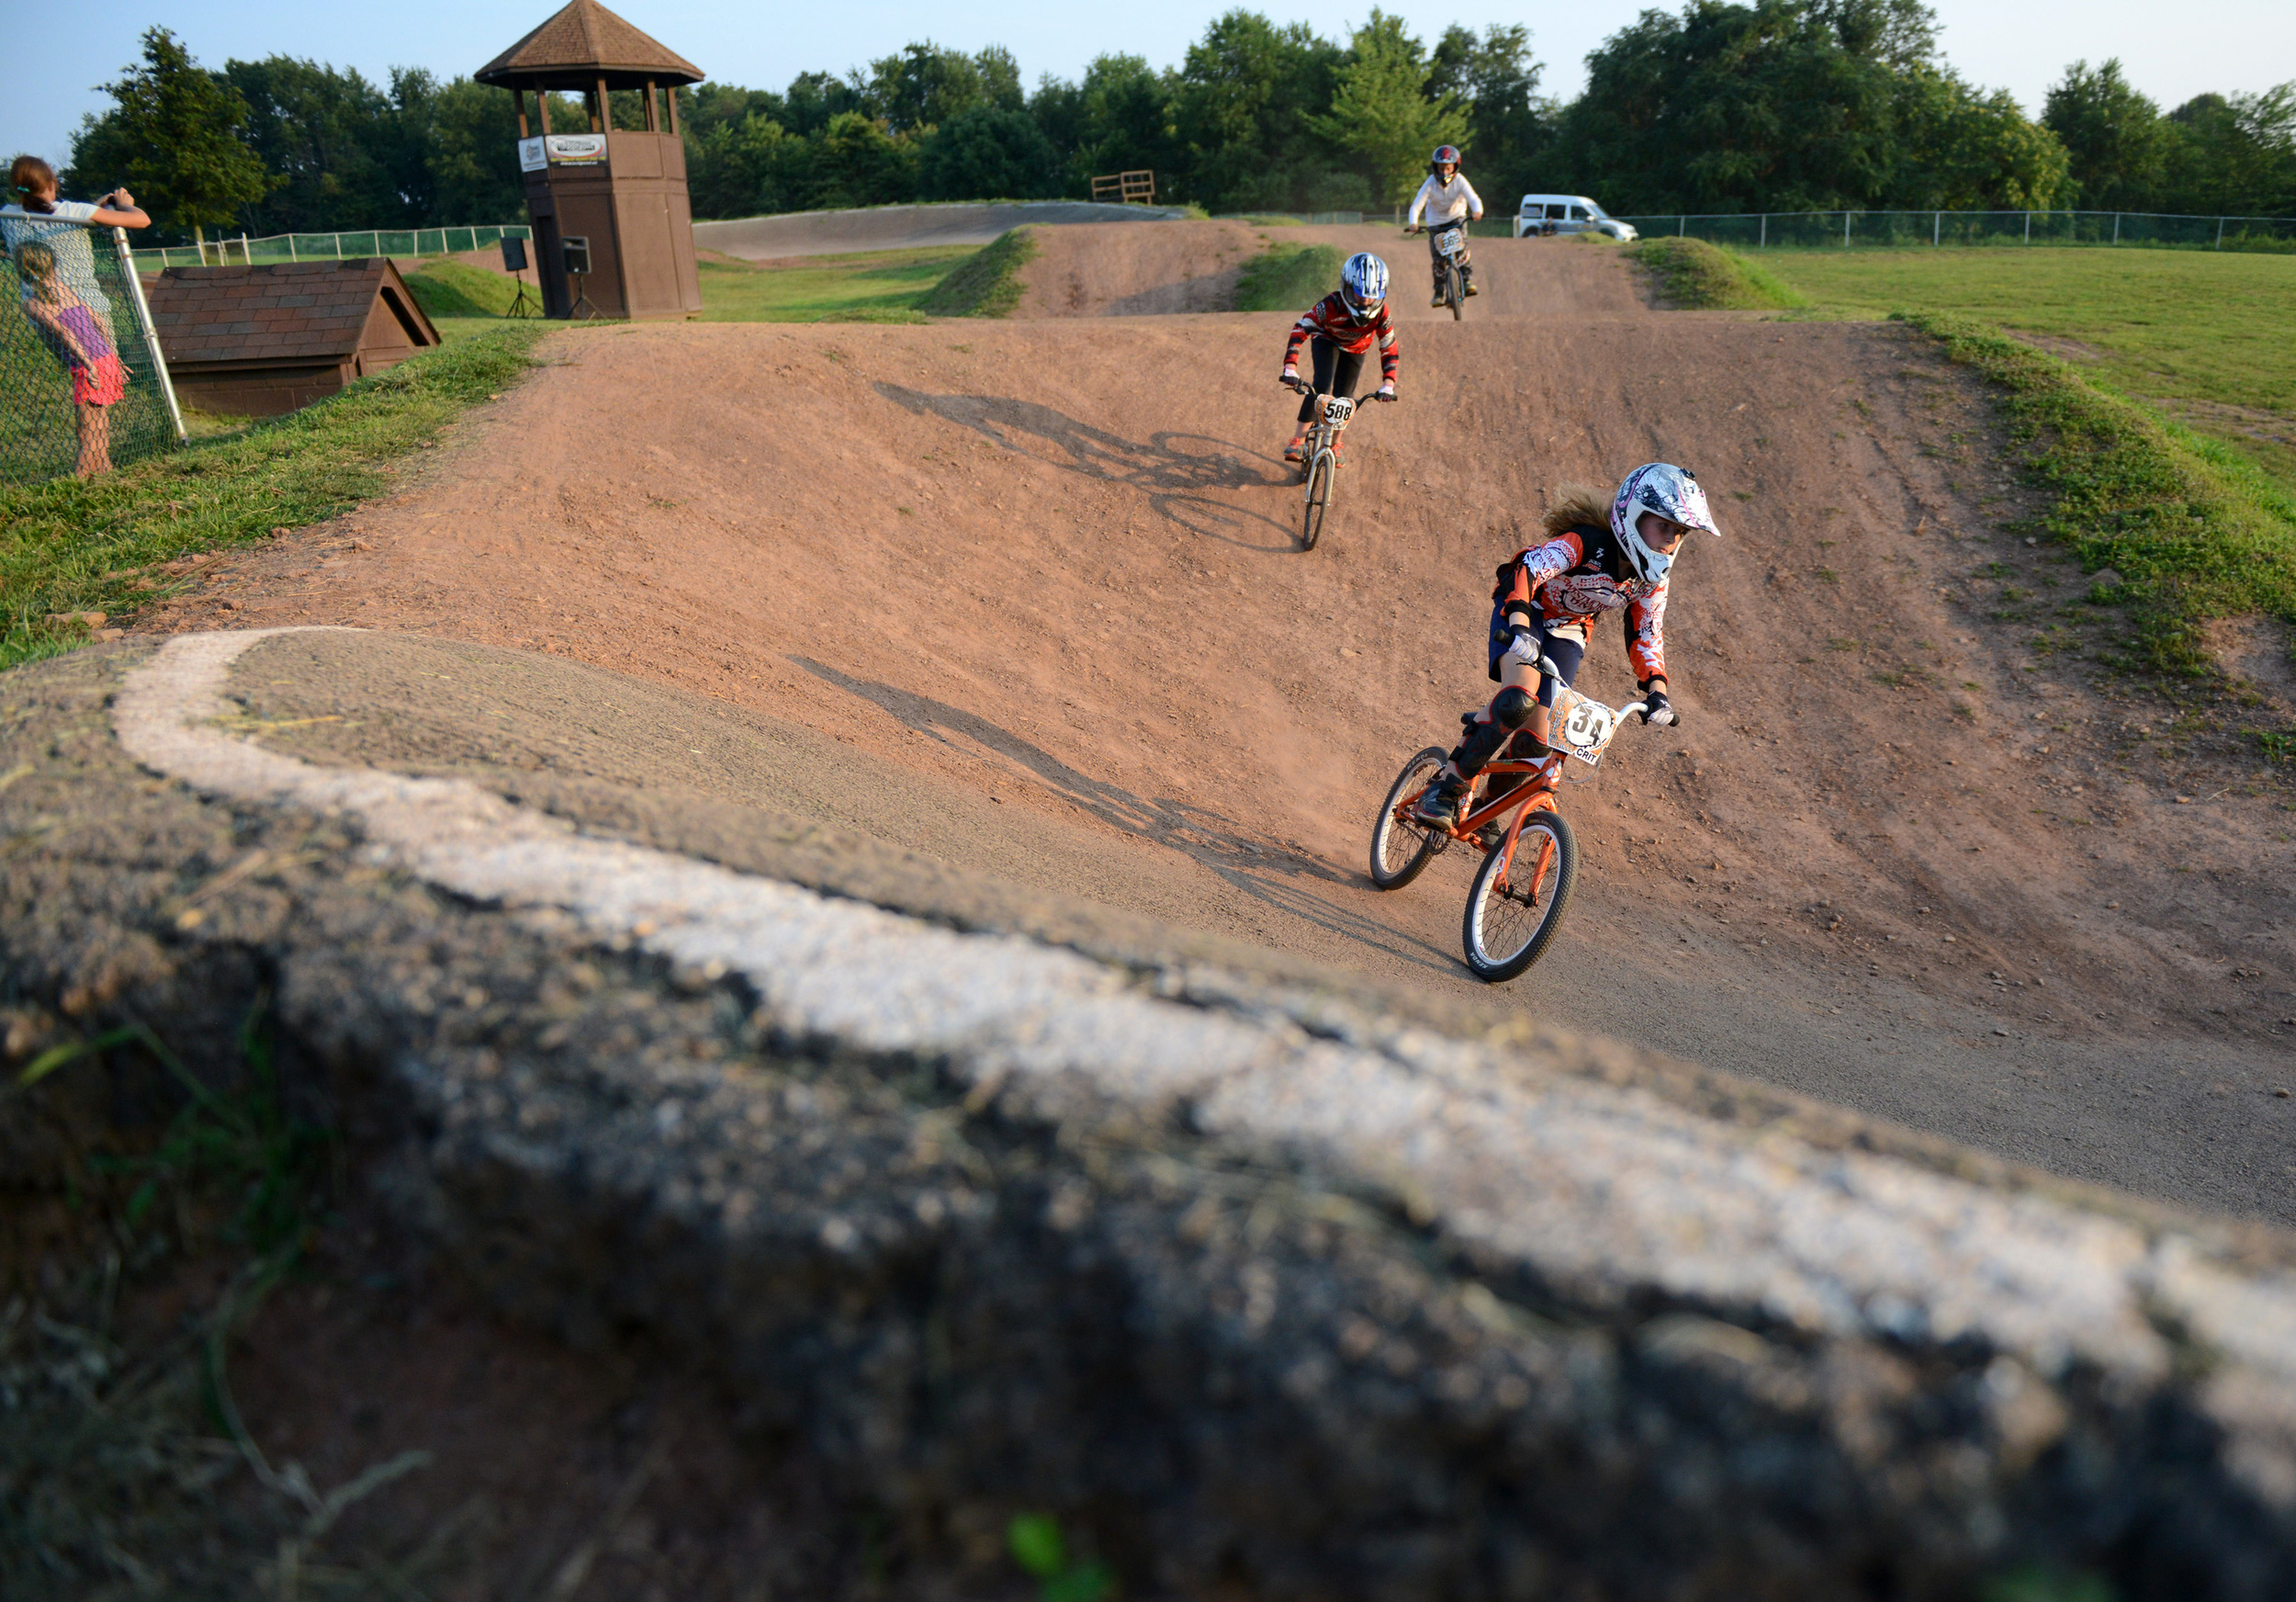 Tasha Kerfonta, of Apollo, takes the lead as she races fellow riders at the BMX Park in Northmoreland Park in Allegheny Township on Tuesday, July 28, 2015.